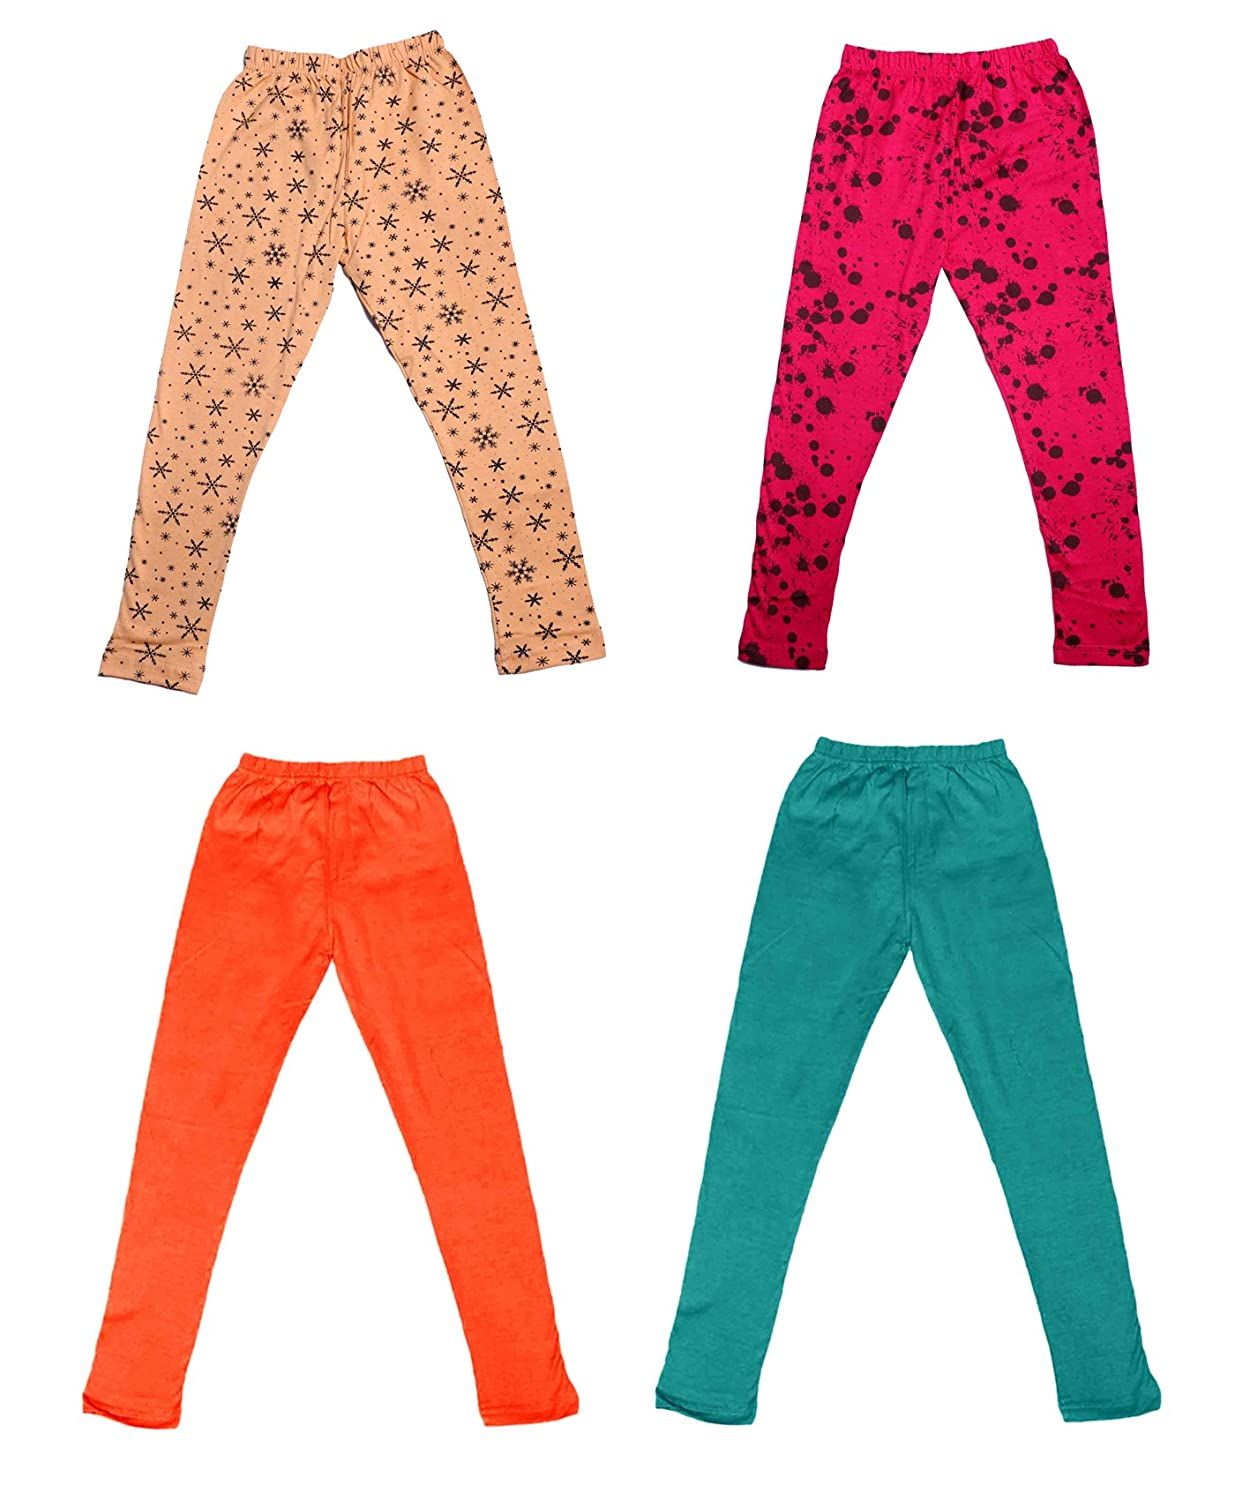 Pack Of 4 /_Multicolor/_Size-9-10 Years/_71414151920-IW-P4-32 and 2 Cotton Printed Legging Pants Indistar Girls 2 Cotton Solid Legging Pants